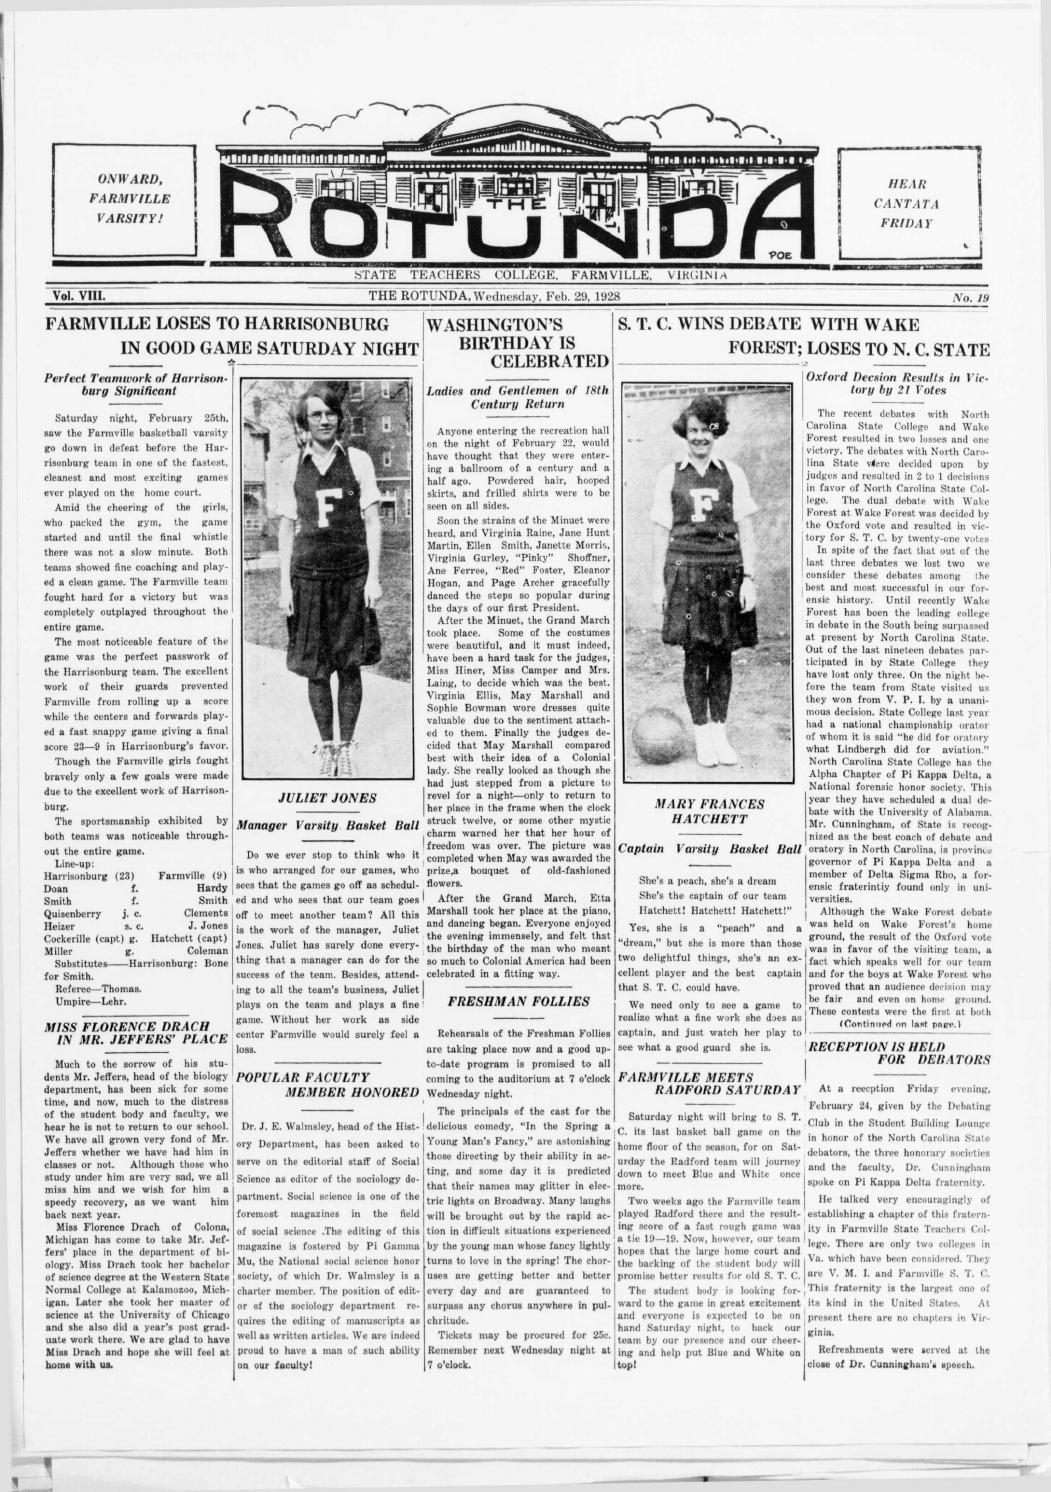 Rotunda vol 8, no 19 feb 29, 1928 by Greenwood Library - issuu